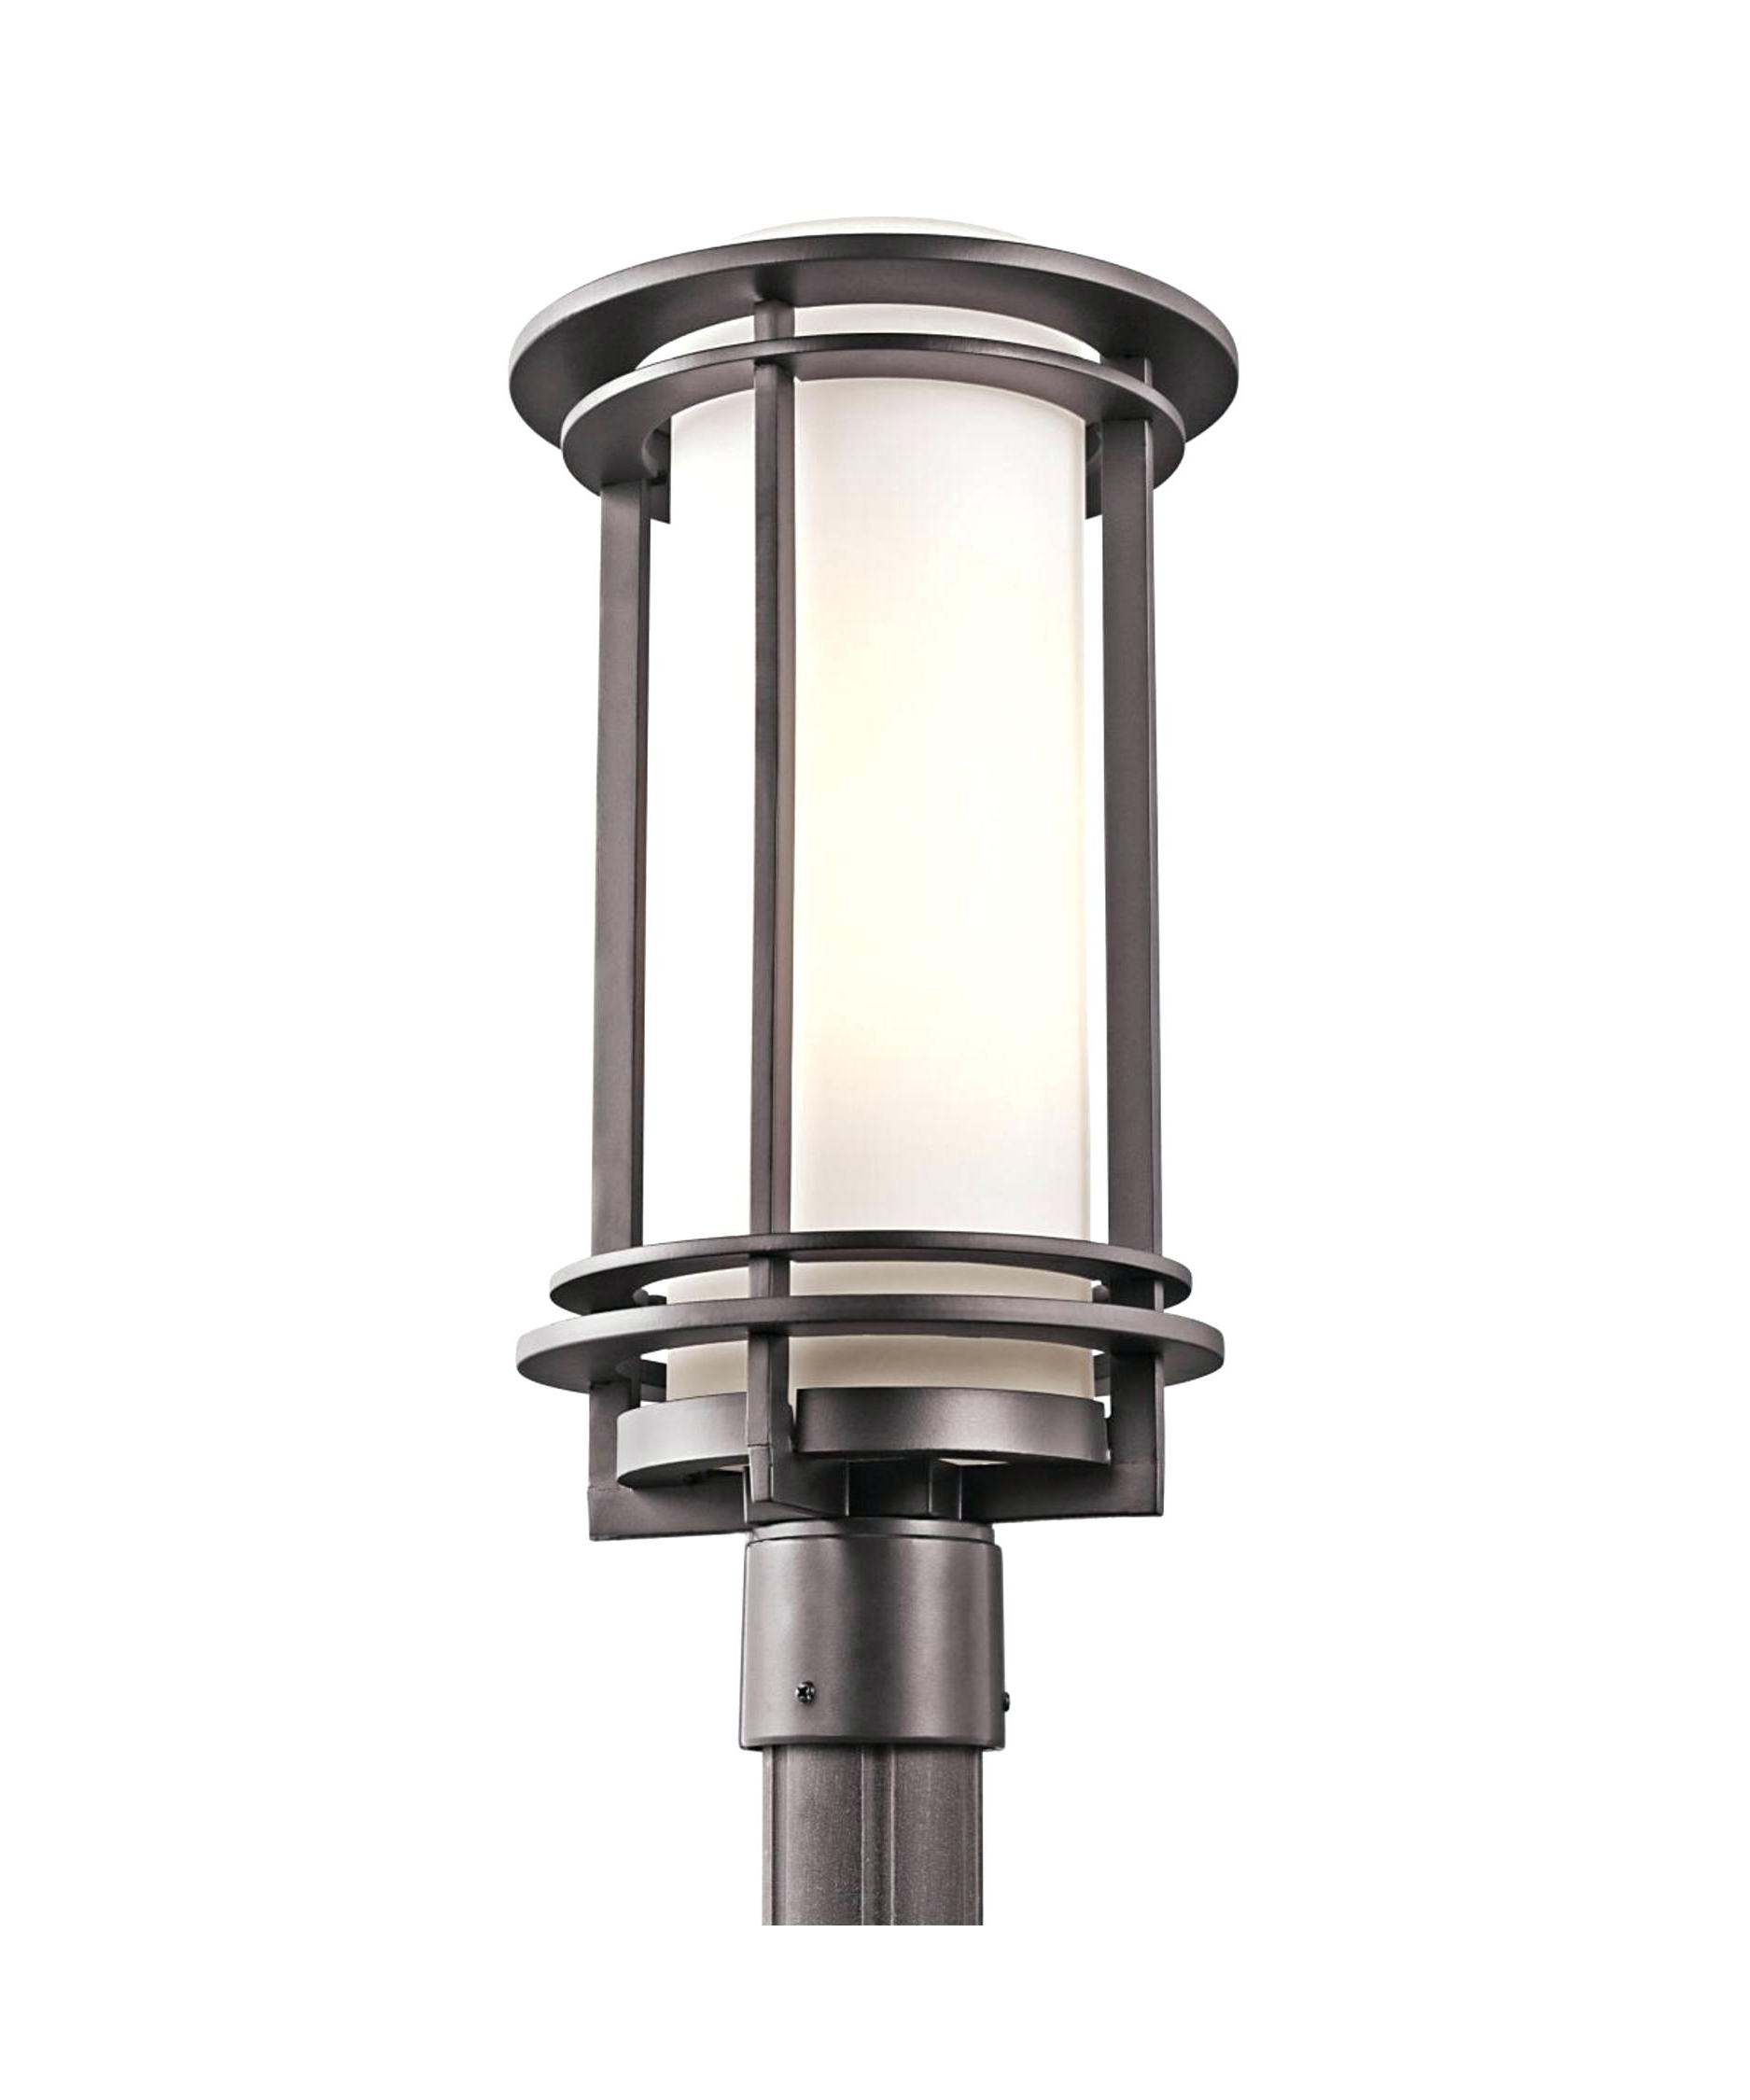 Favorite Yard Lamps Most Out Of This World Outdoor Solar Lamp Post Solar With Outdoor Lanterns On Post (View 5 of 20)